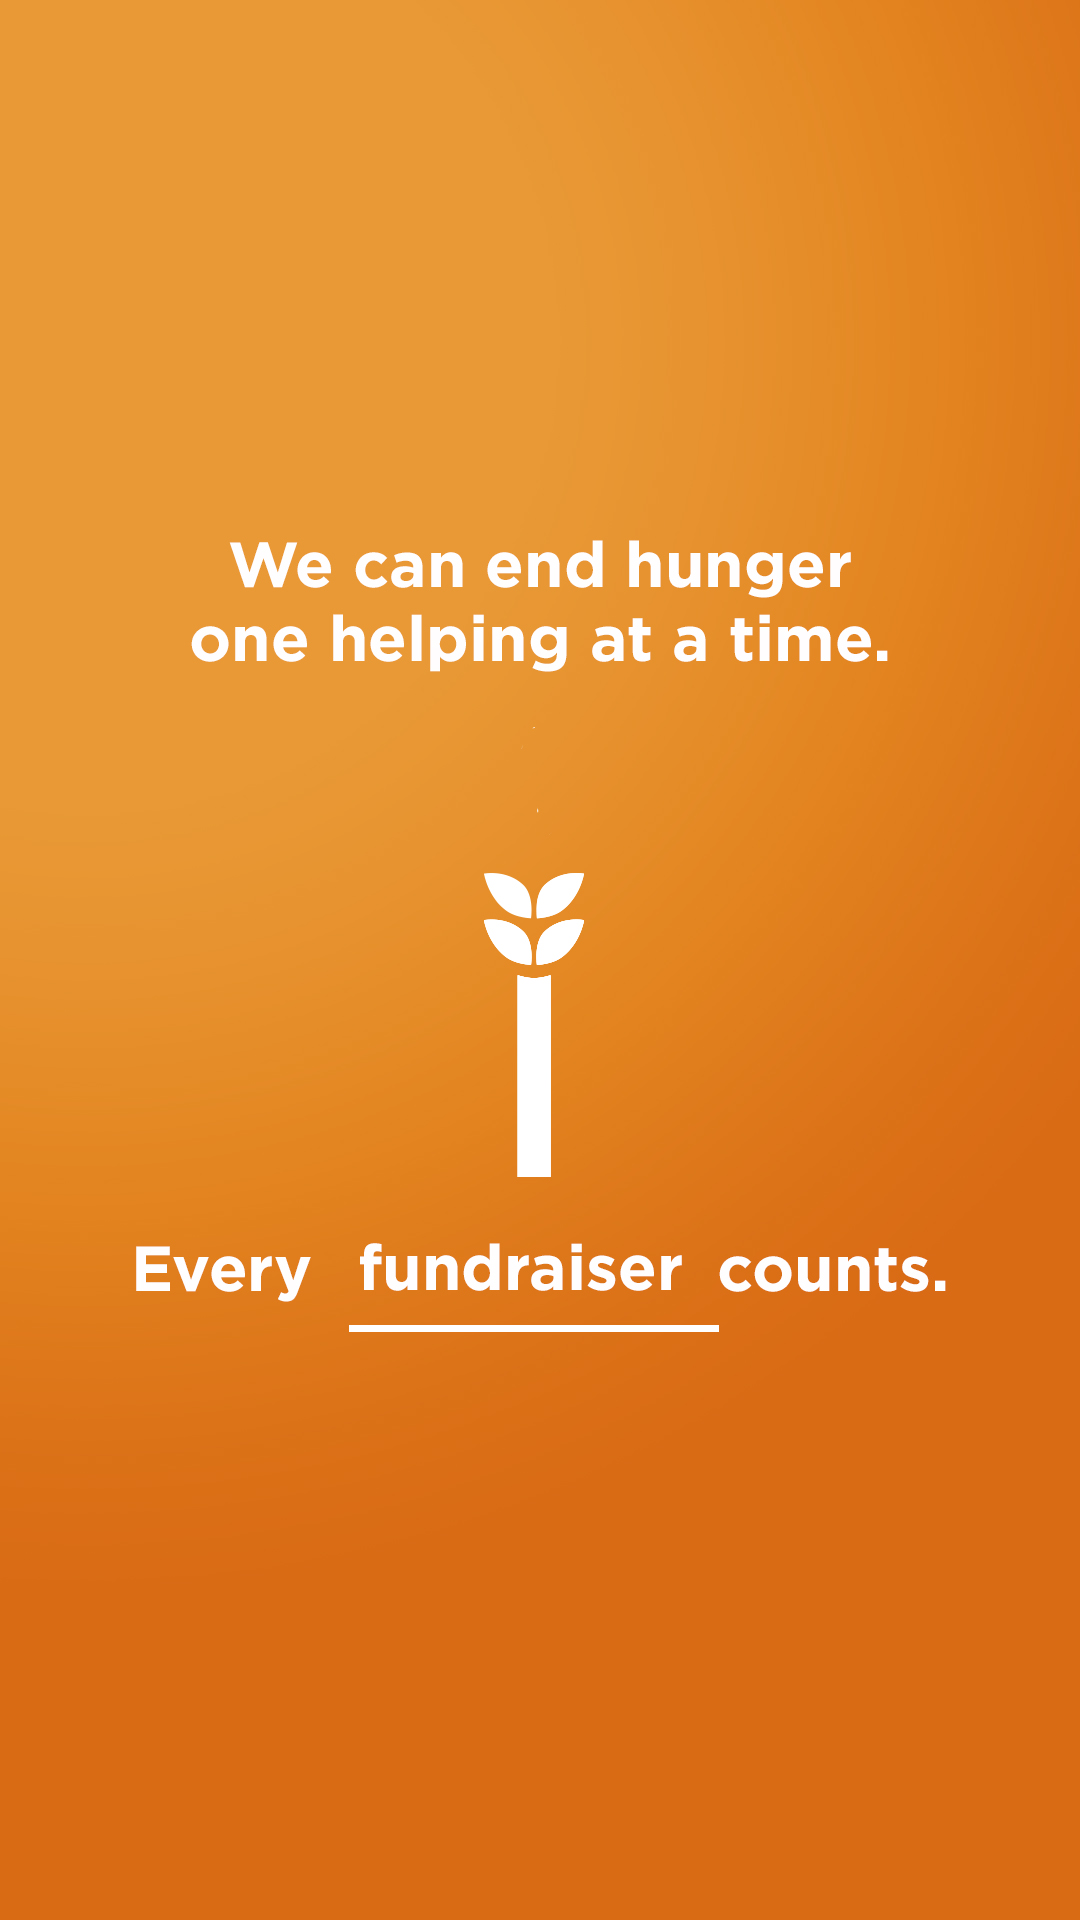 We can end hunger - Fundraiser